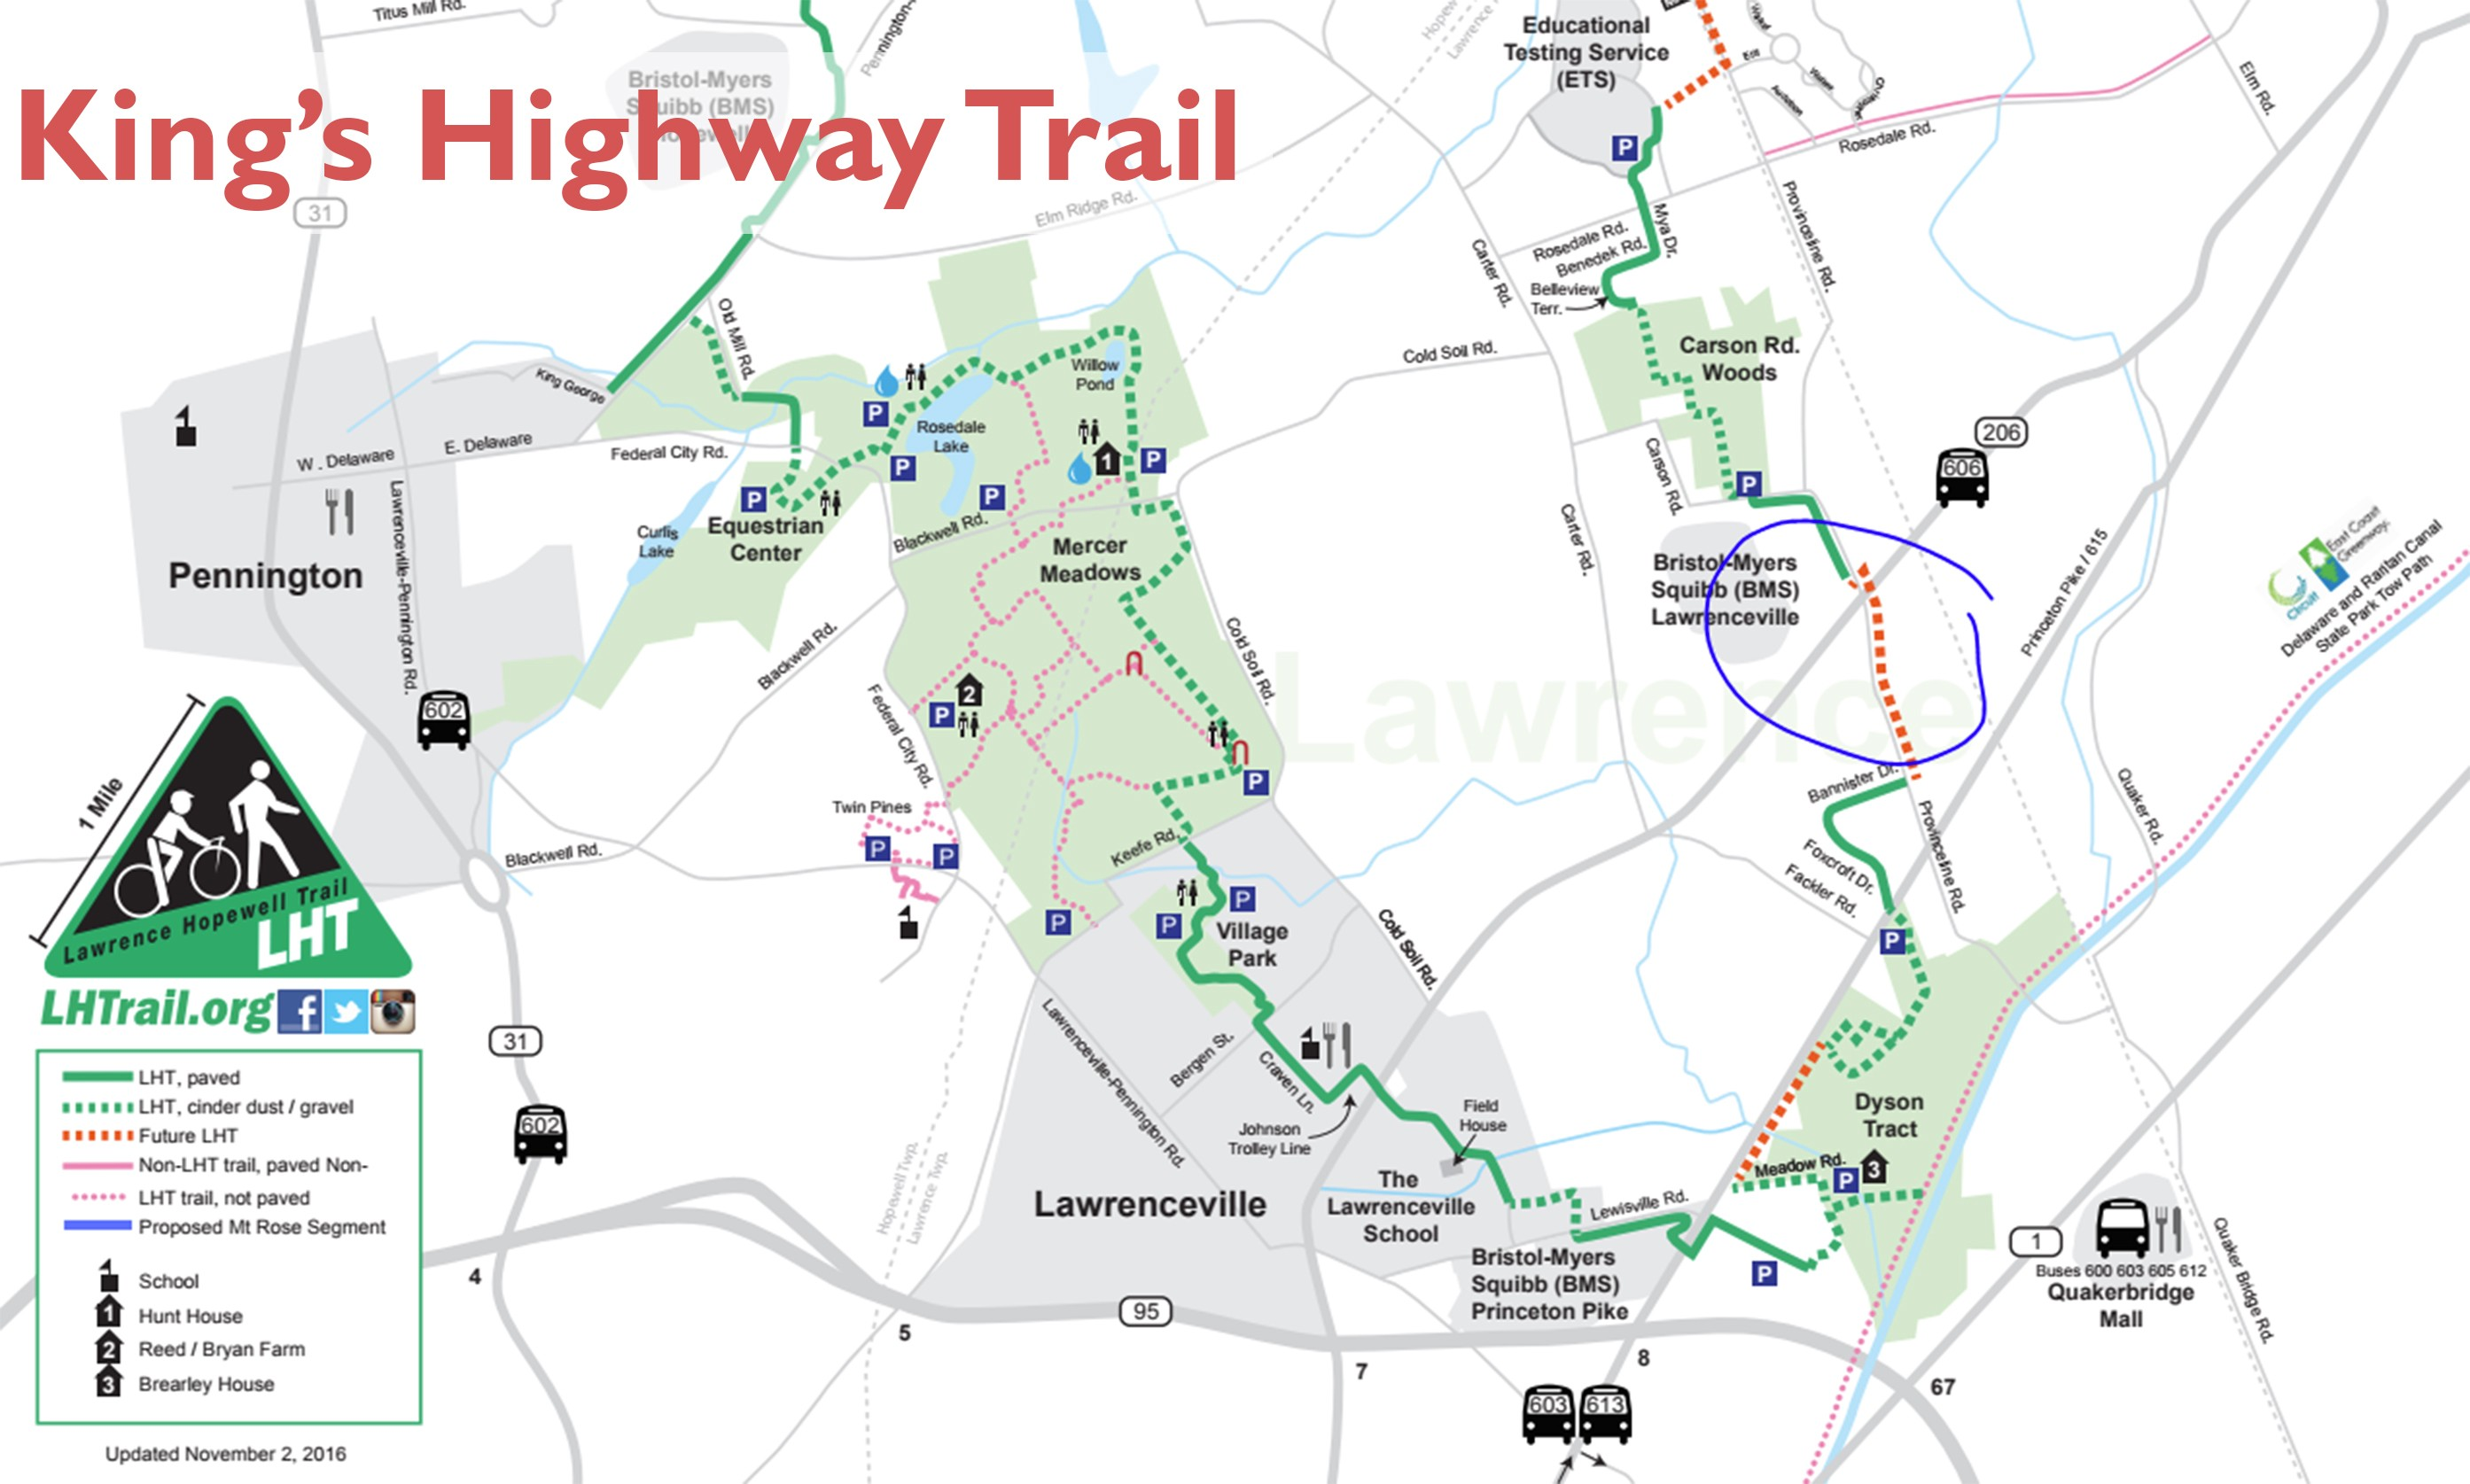 King's Highway Trail